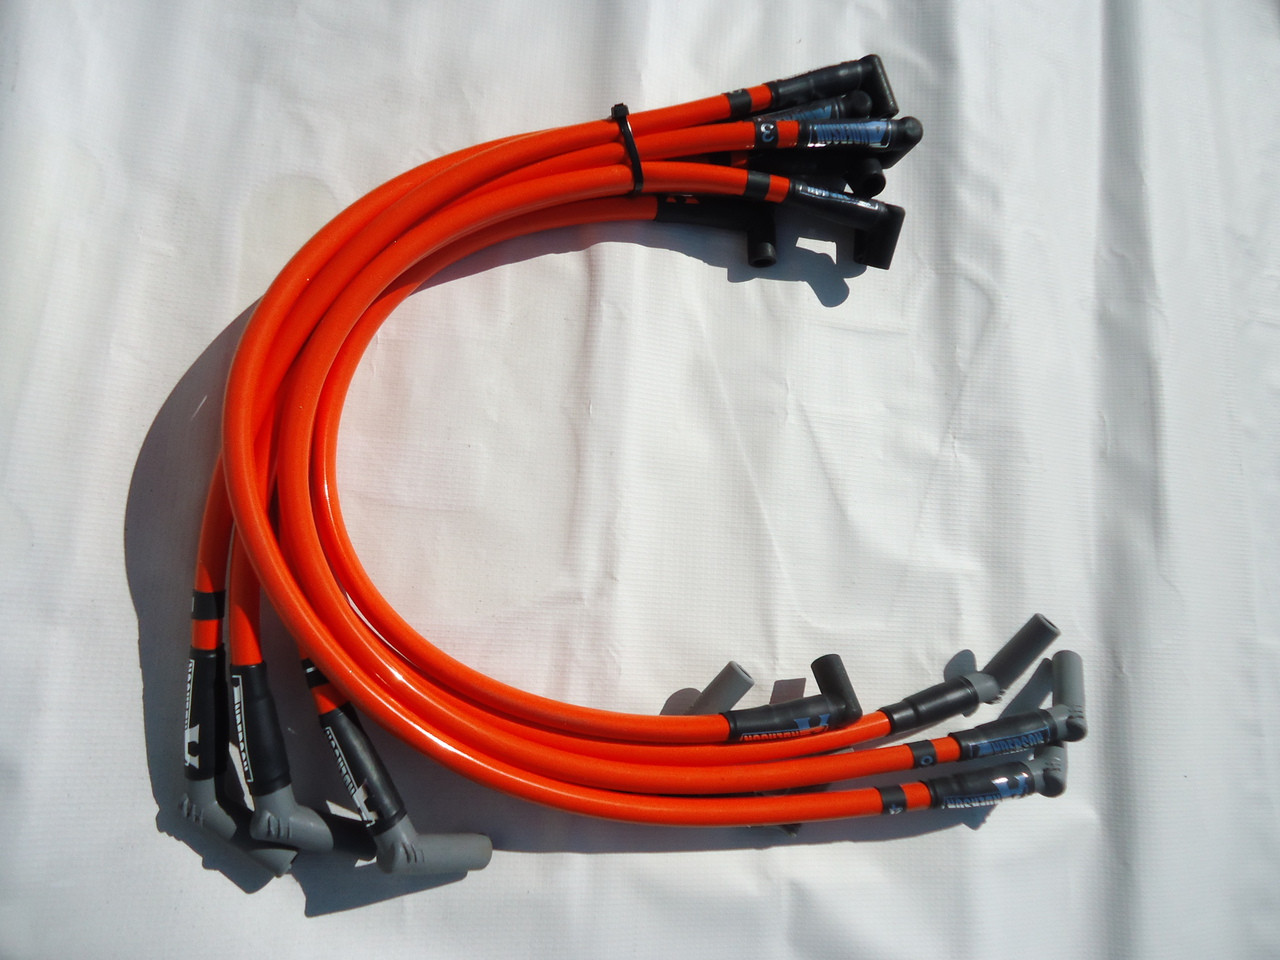 medium resolution of anderson super 40 spark plug wires competition orange fits 86 93 5 0l mustang anderson ford motorsport